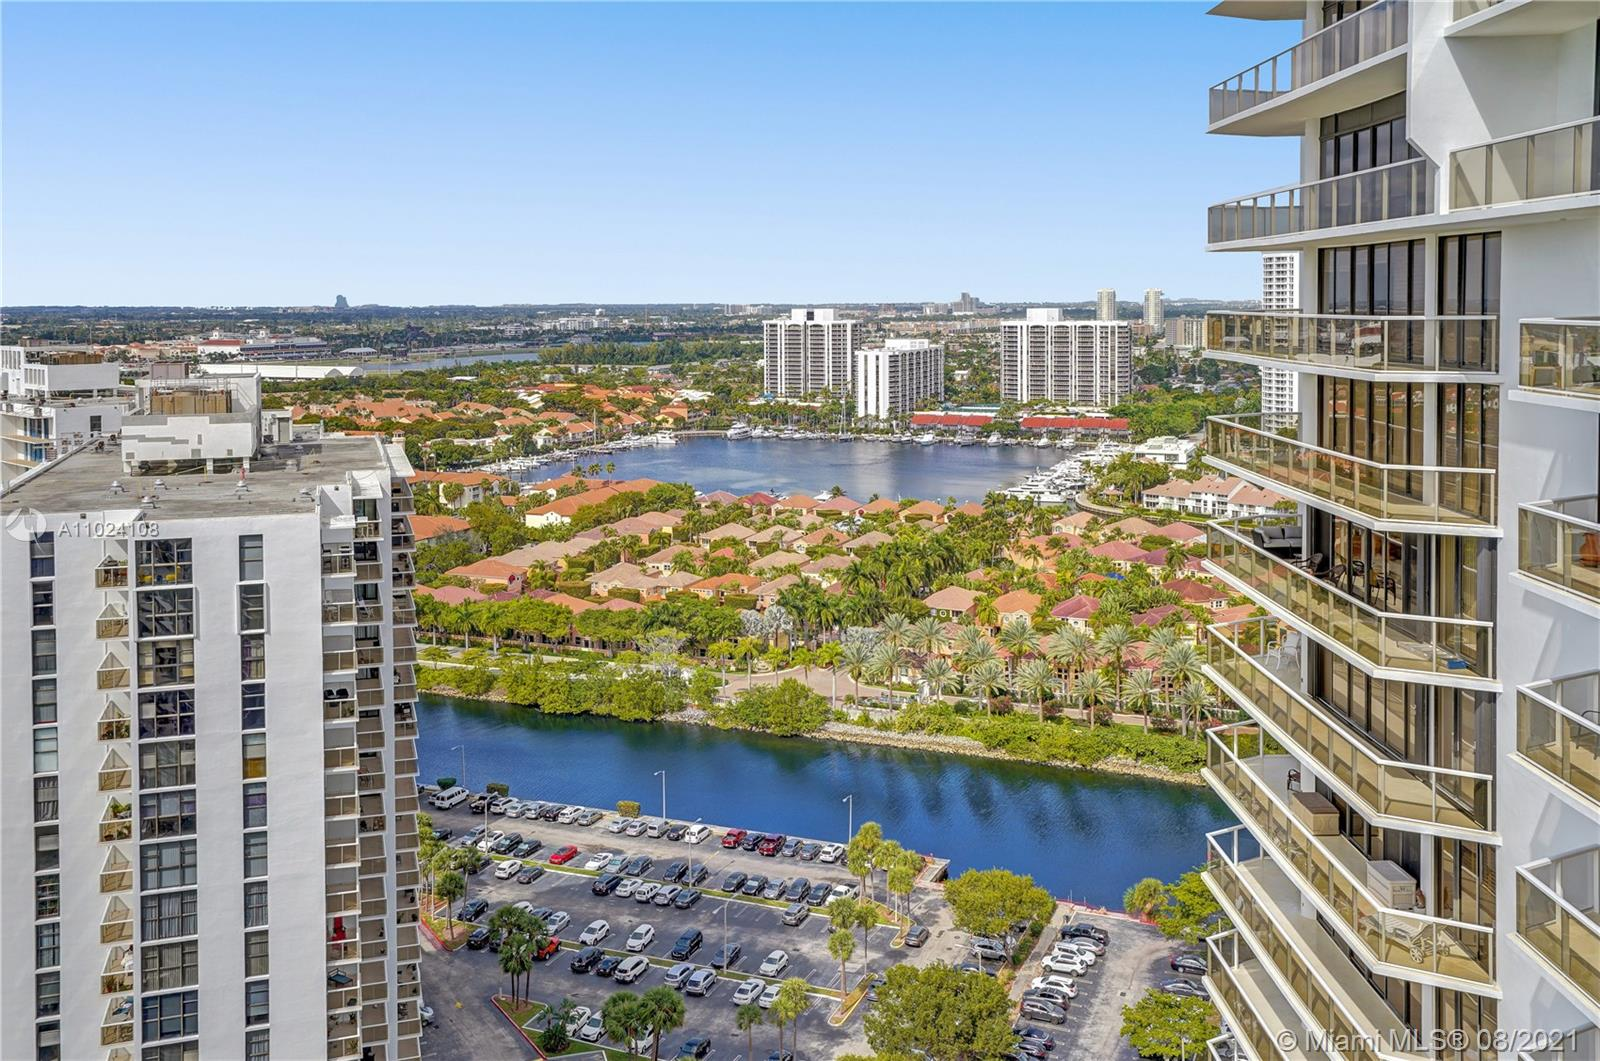 Photo of 20281 Country Club Dr #2407, Aventura, Florida, 33180 - Panoramic view.